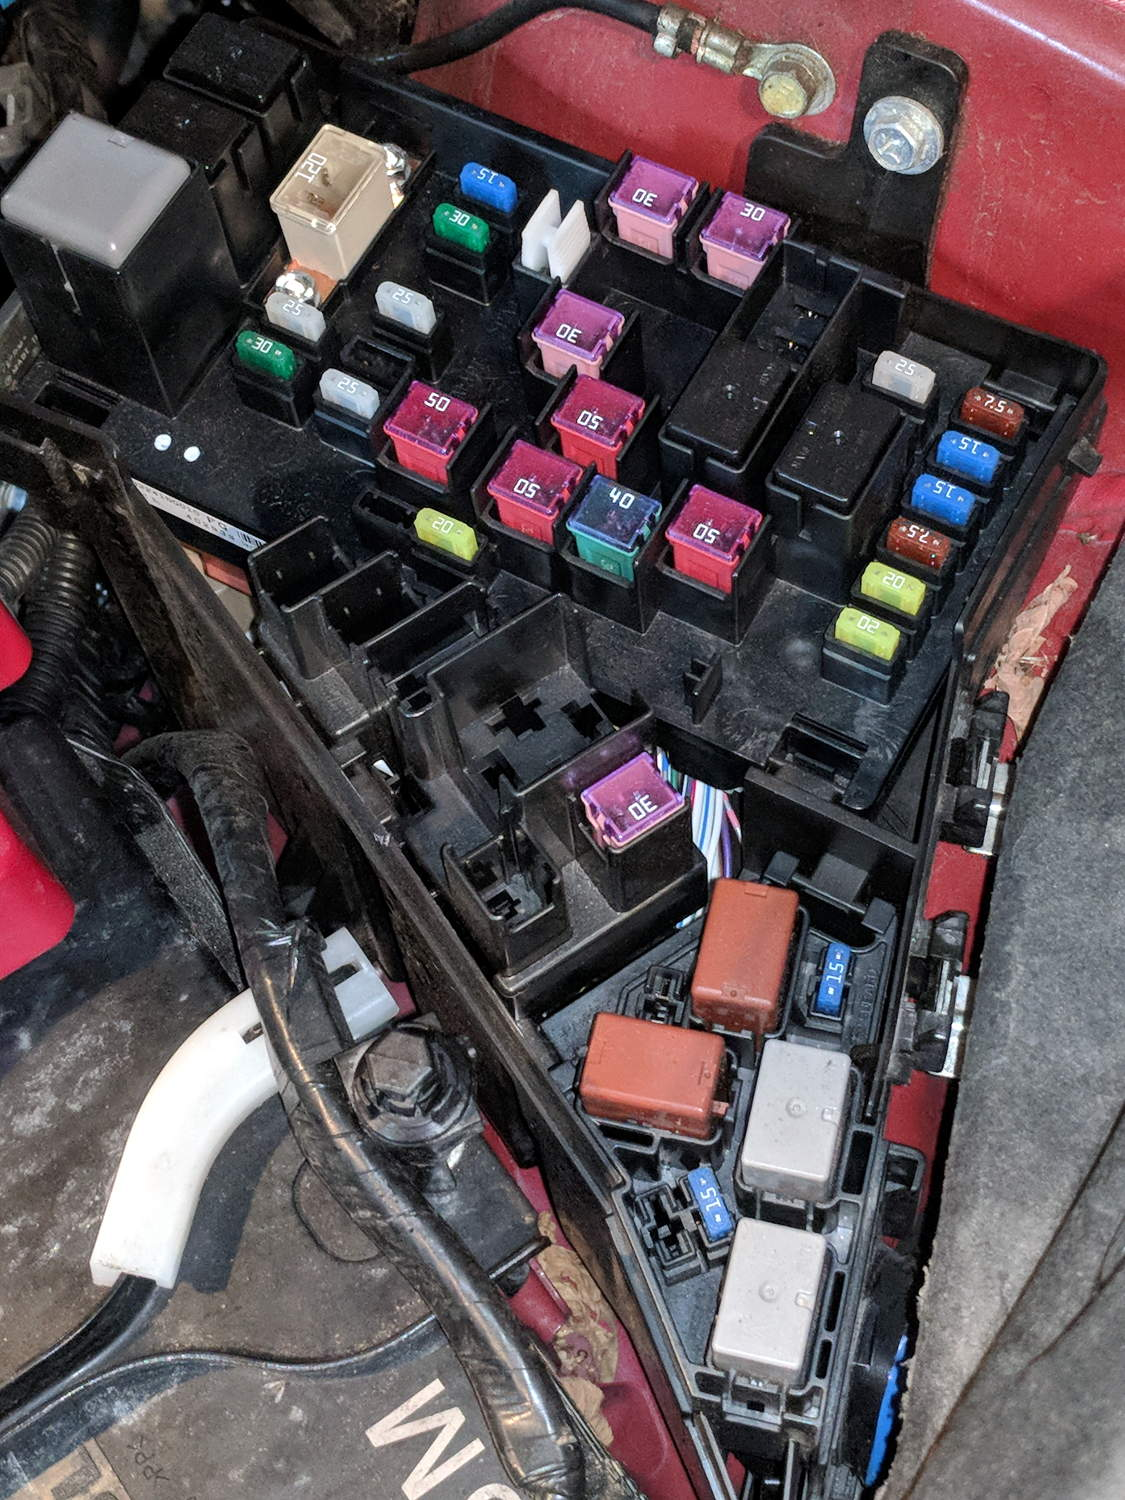 Subaru Forester Fuse Boxes The Smell Of Molten Projects In Morning Box Sign 2015 Engine Compartment